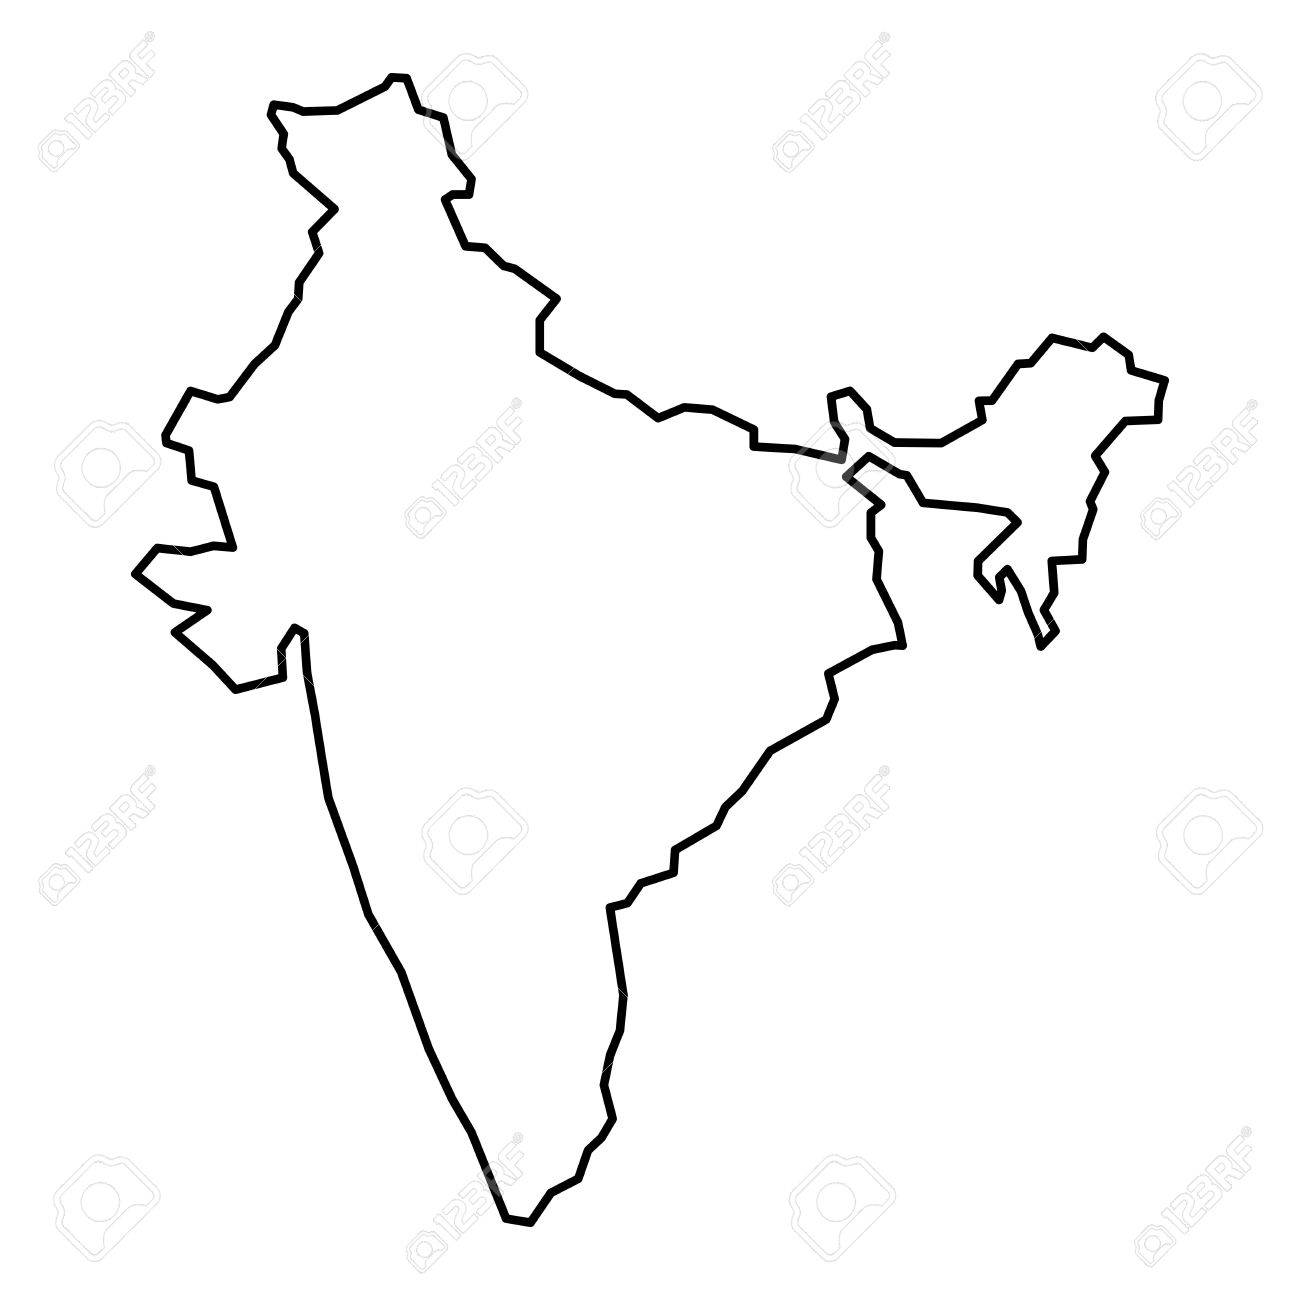 Simple Contour Map Of India. Black Outline Map Isolated On White ...